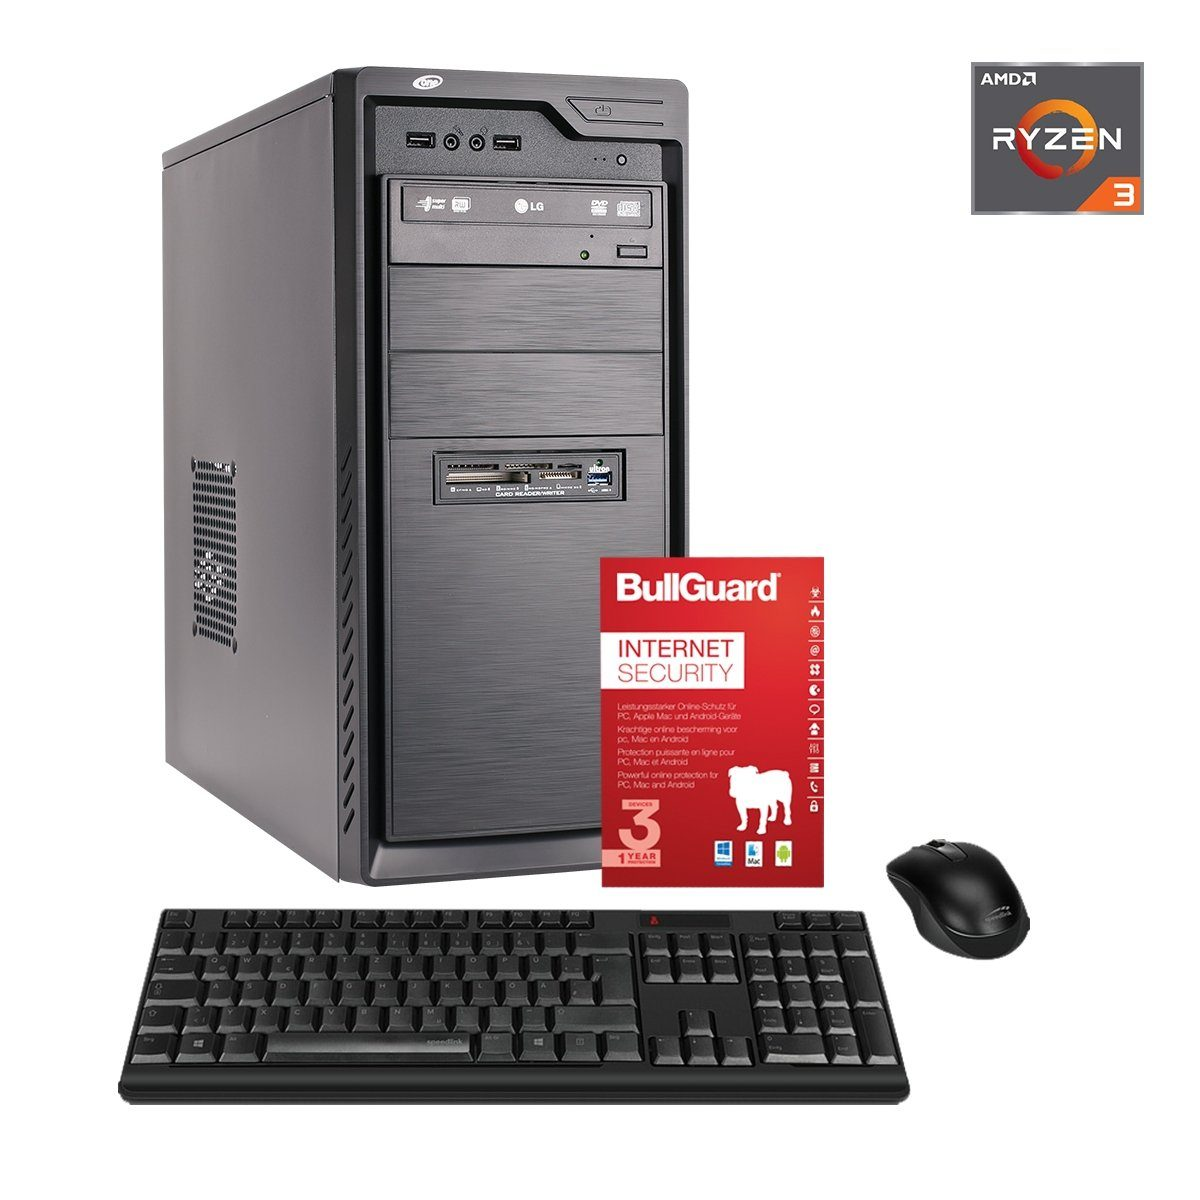 ONE PC, Ryzen 3 2200G, Radeon RX Vega 8 Graphics, 8GB DDR4 SDRAM »Office PC 44687«